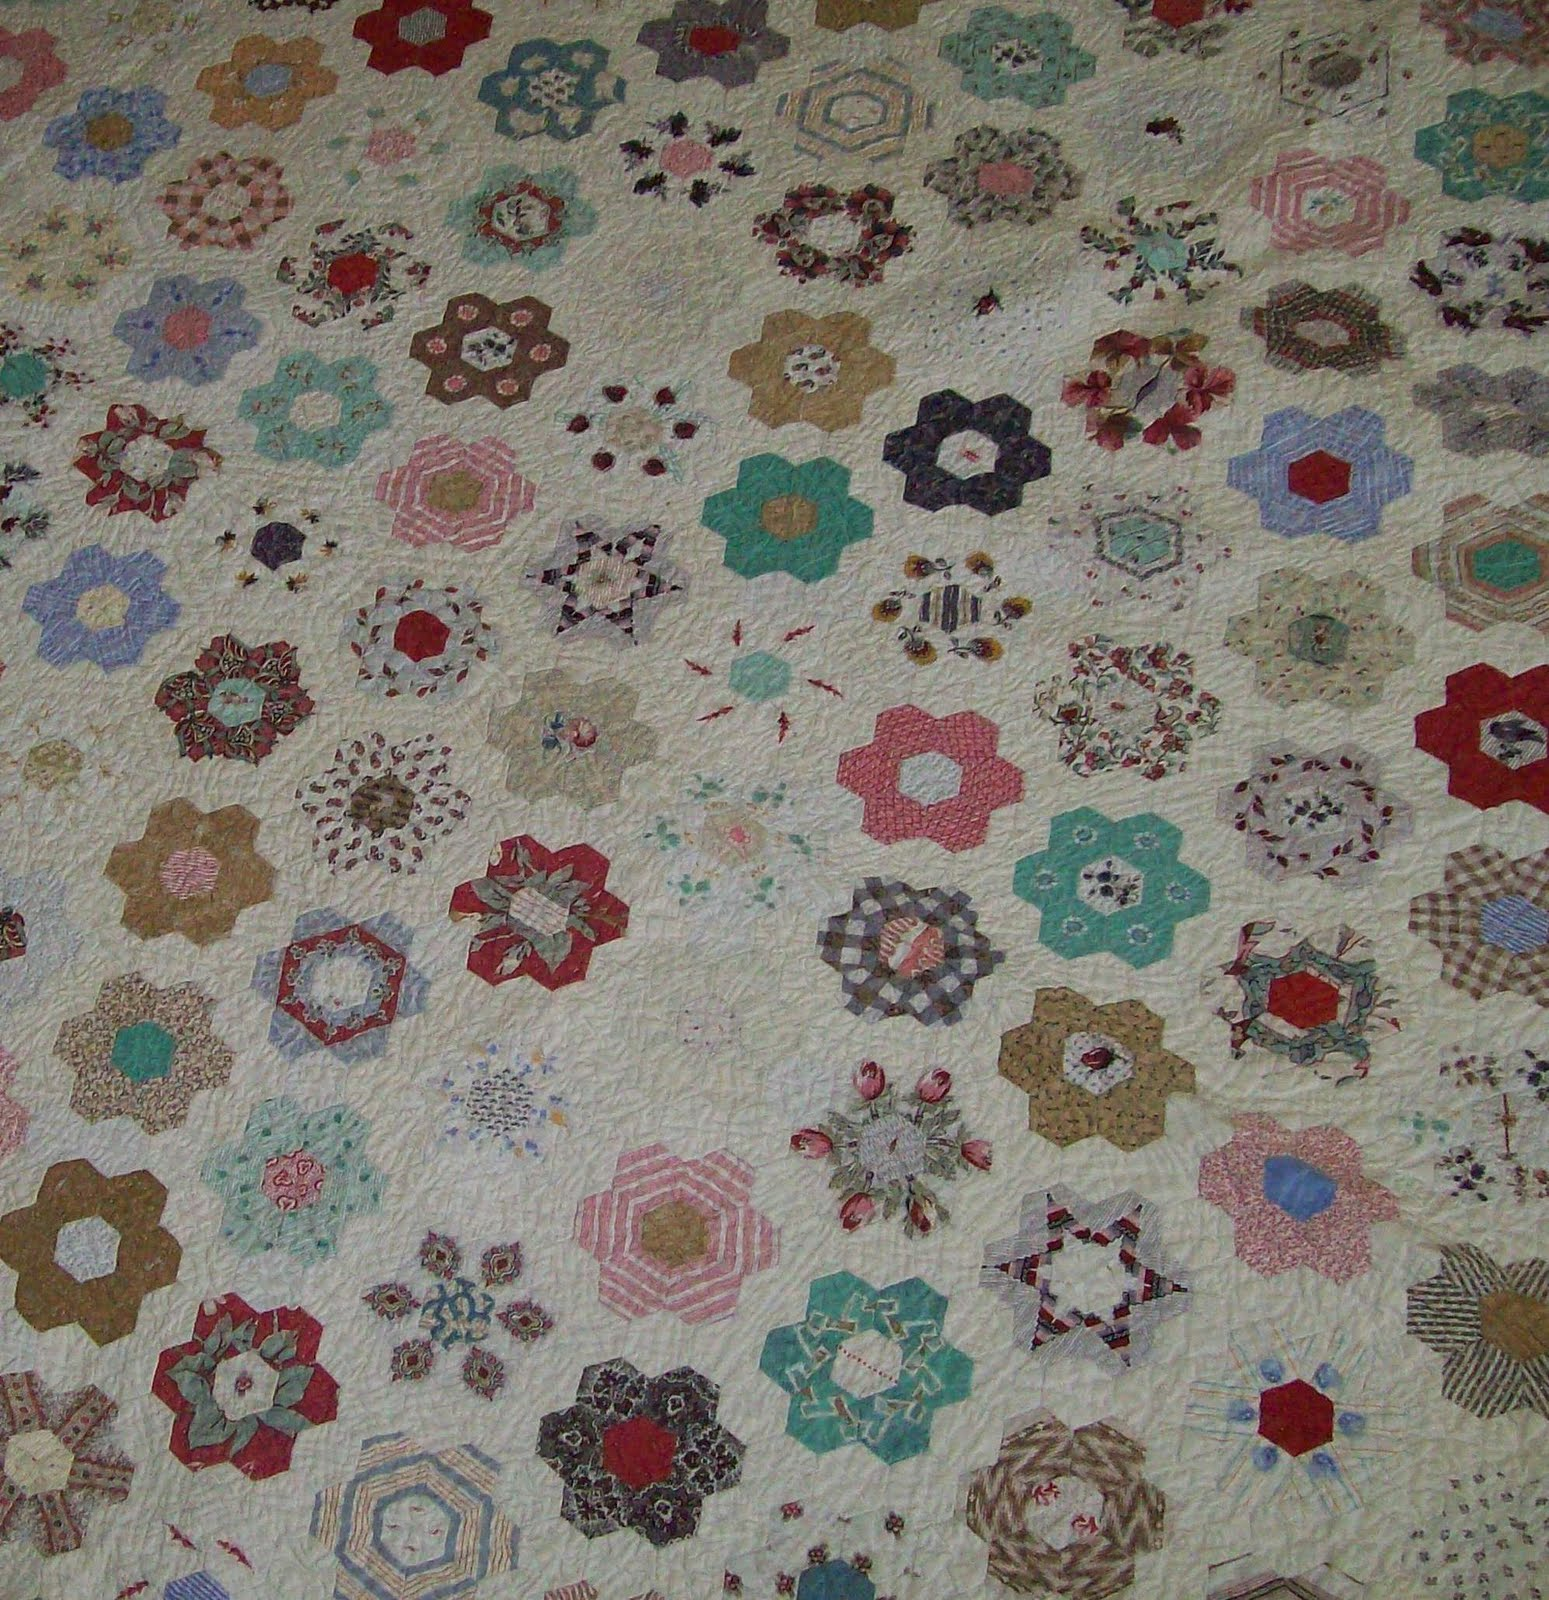 Quilt flap not your everyday grandmother 39 s flower garden - Grandmother s flower garden quilt ...